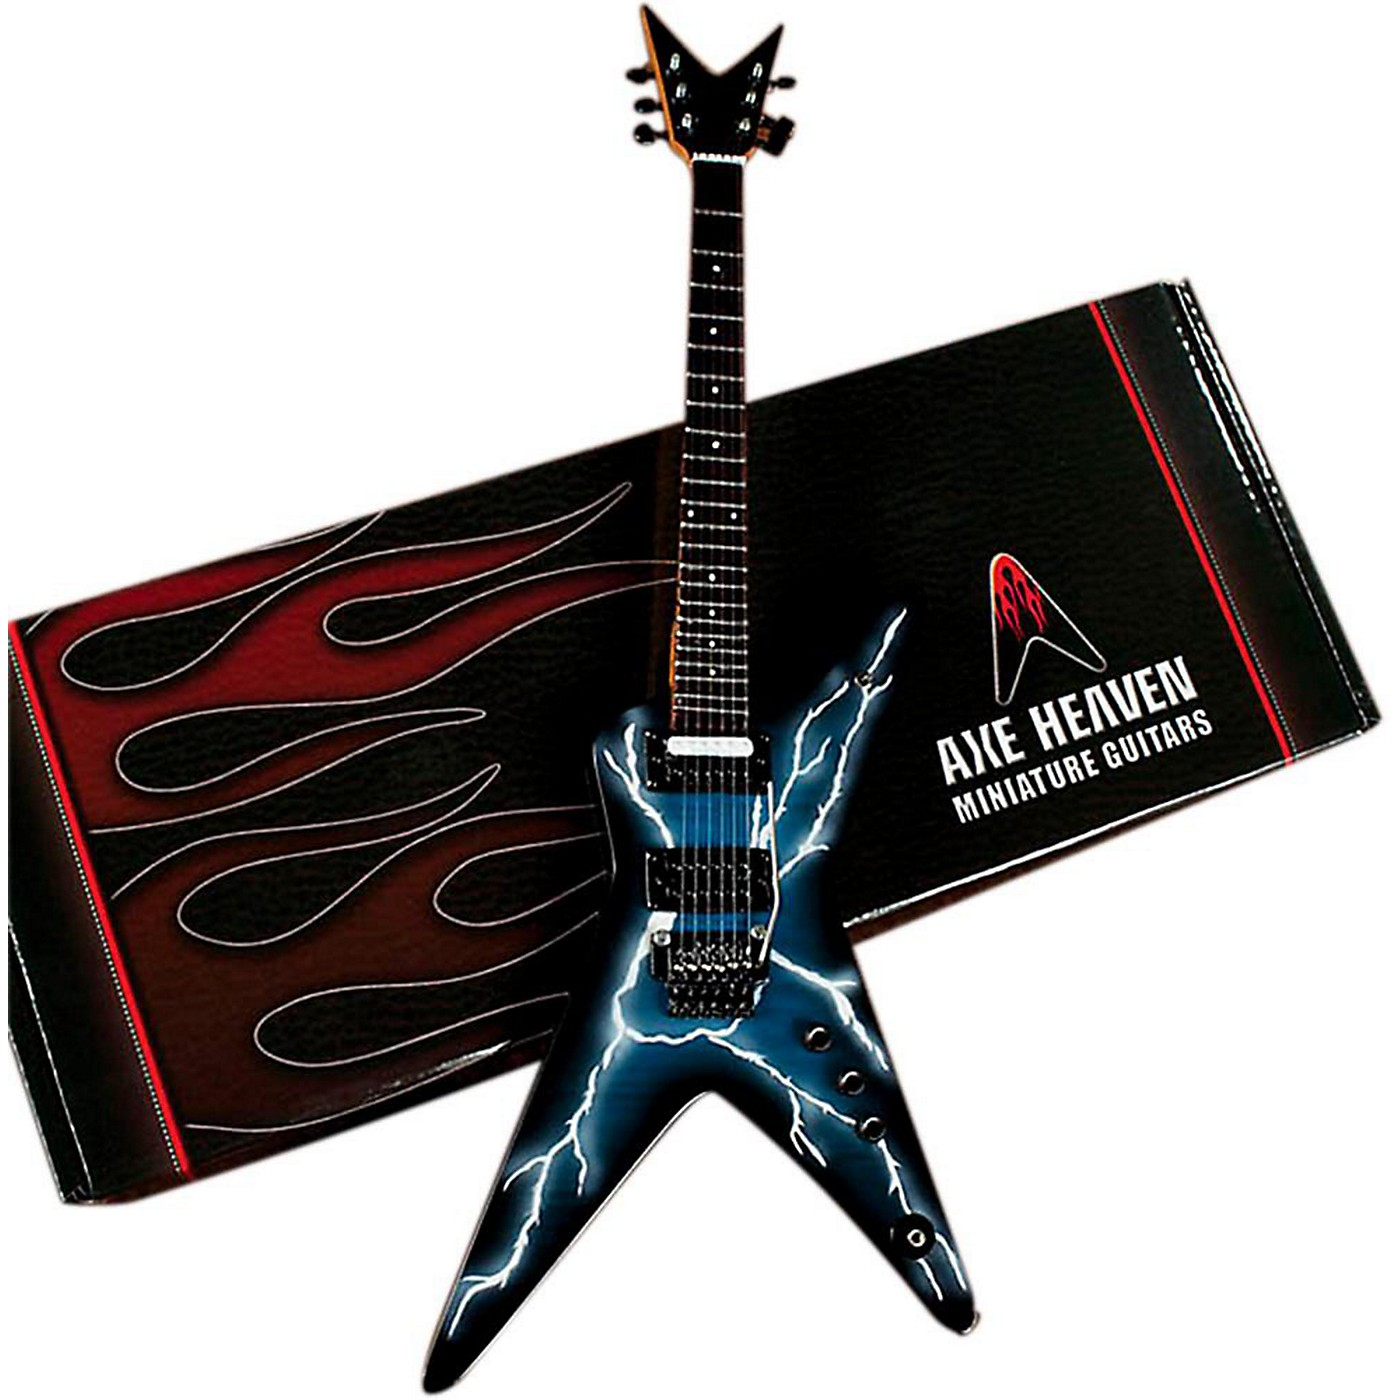 Axe Heaven Lightning Bolt Signature Model Miniature Guitar Replica Collectible thumbnail